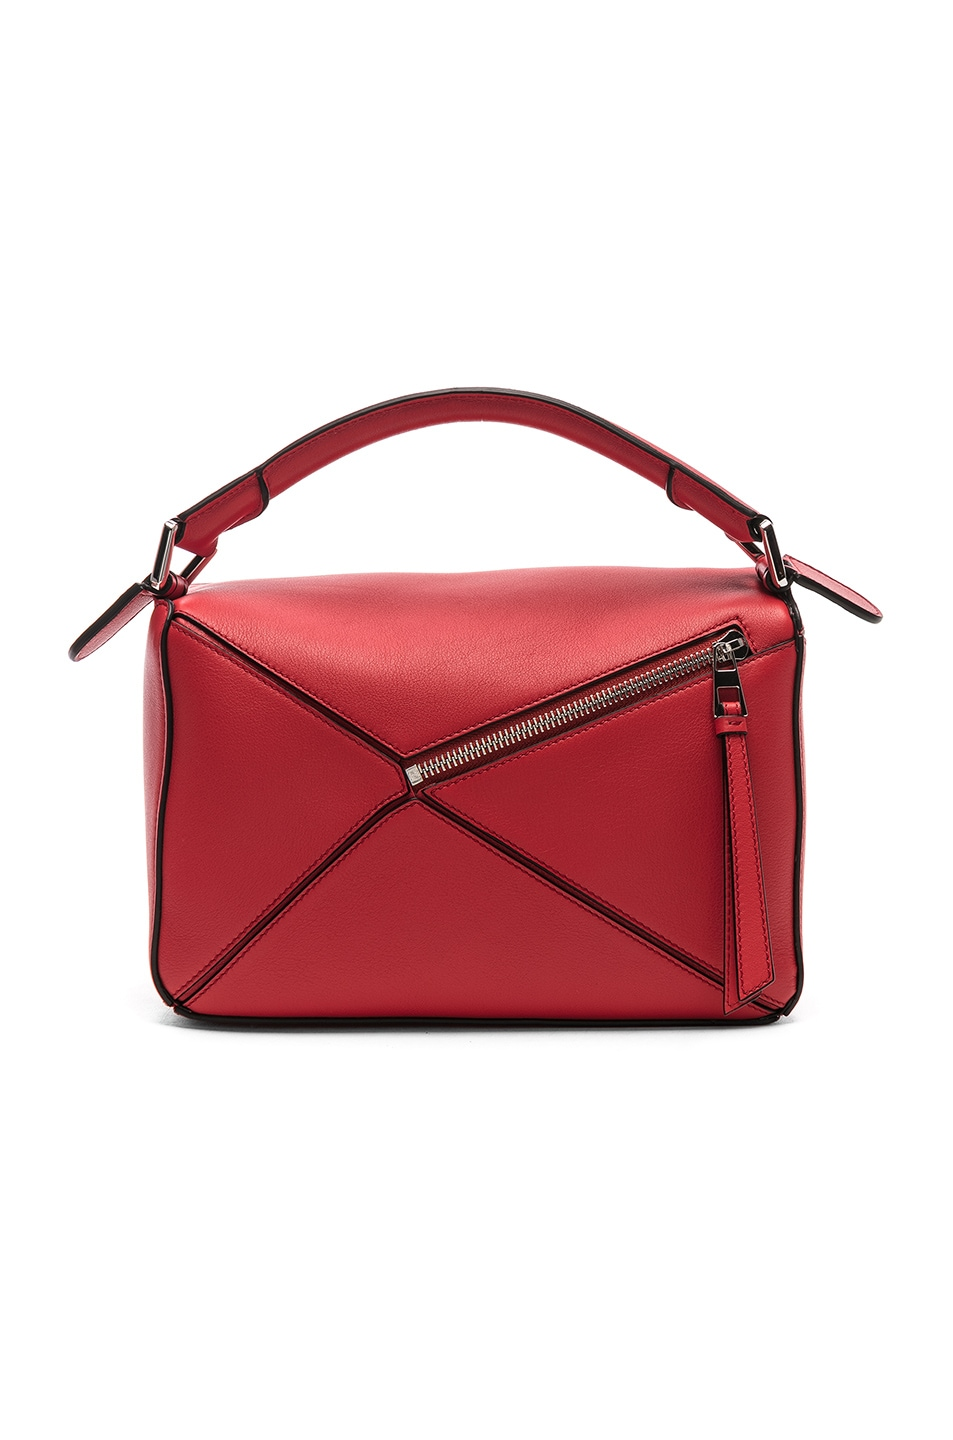 Image 3 of Loewe Puzzle Small Bag in Scarlet Red